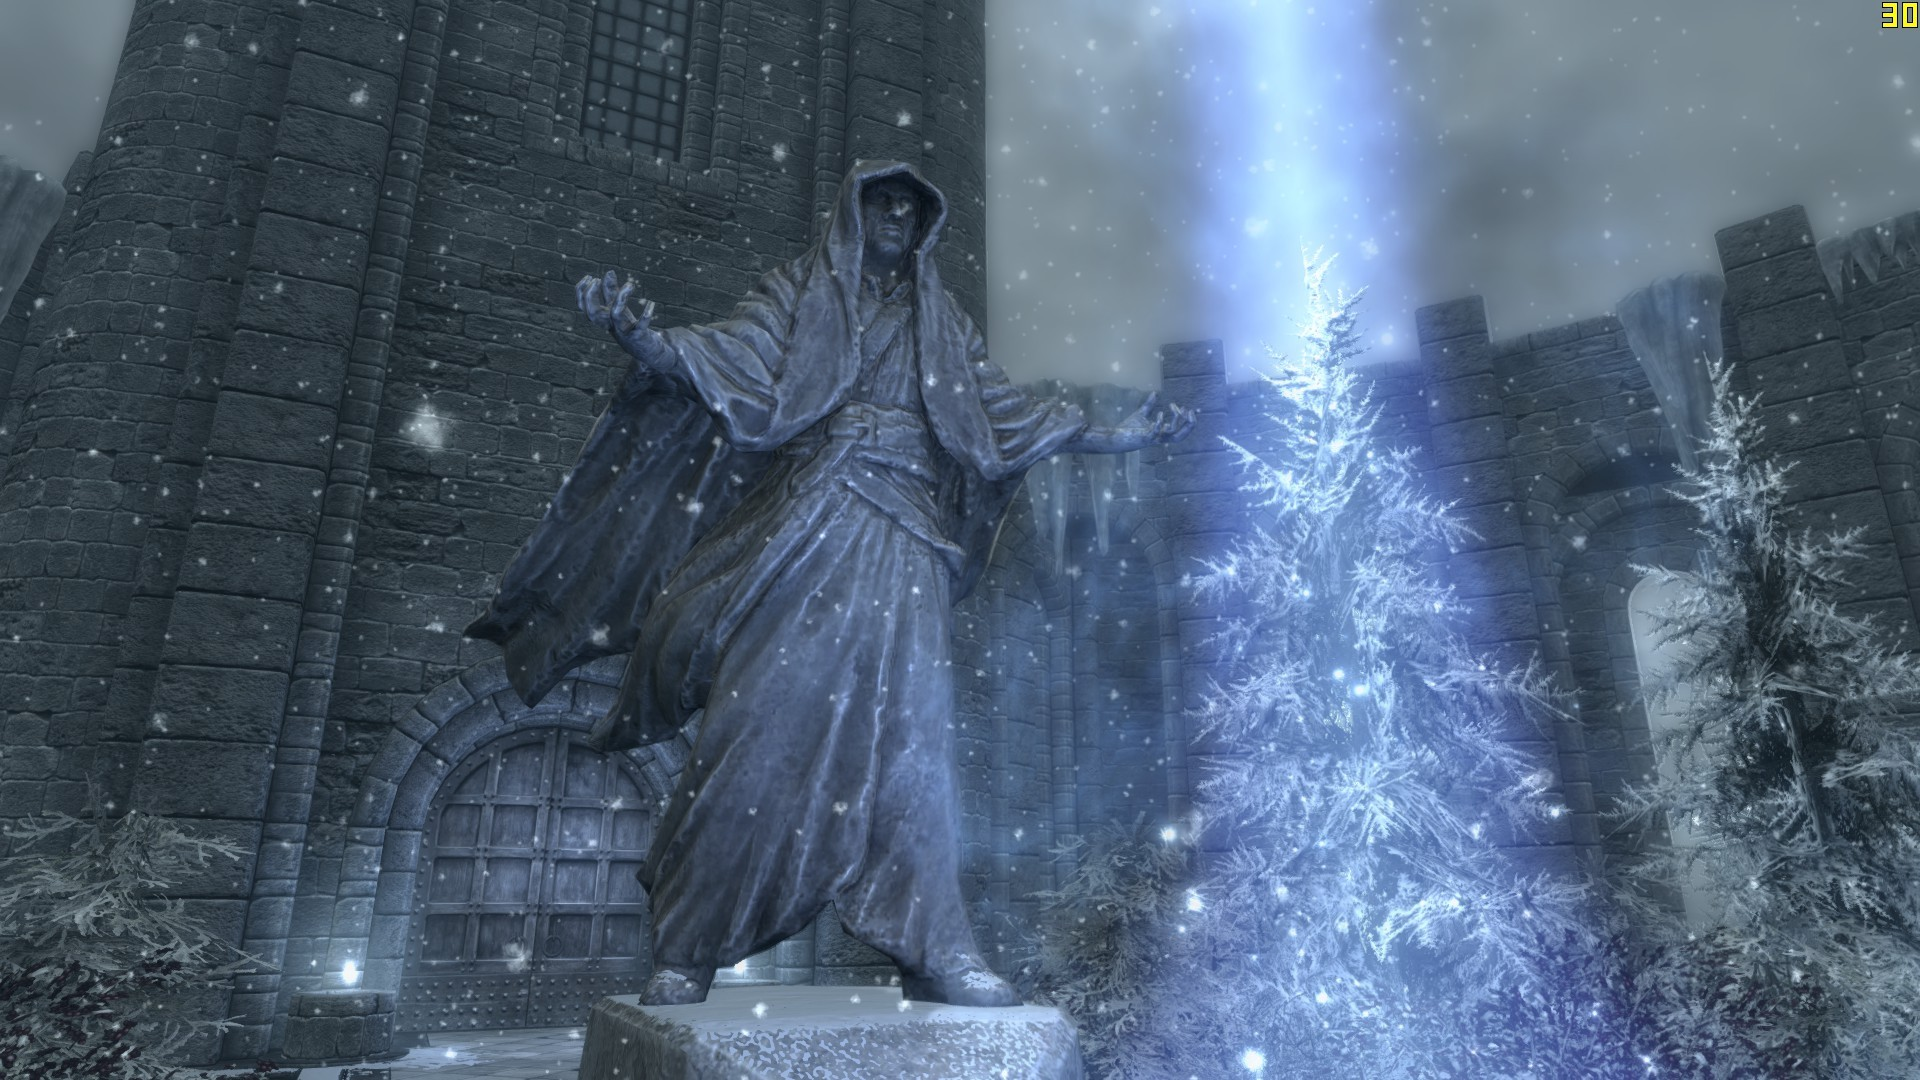 A statue of the game The Elder Scrolls: Skyrim